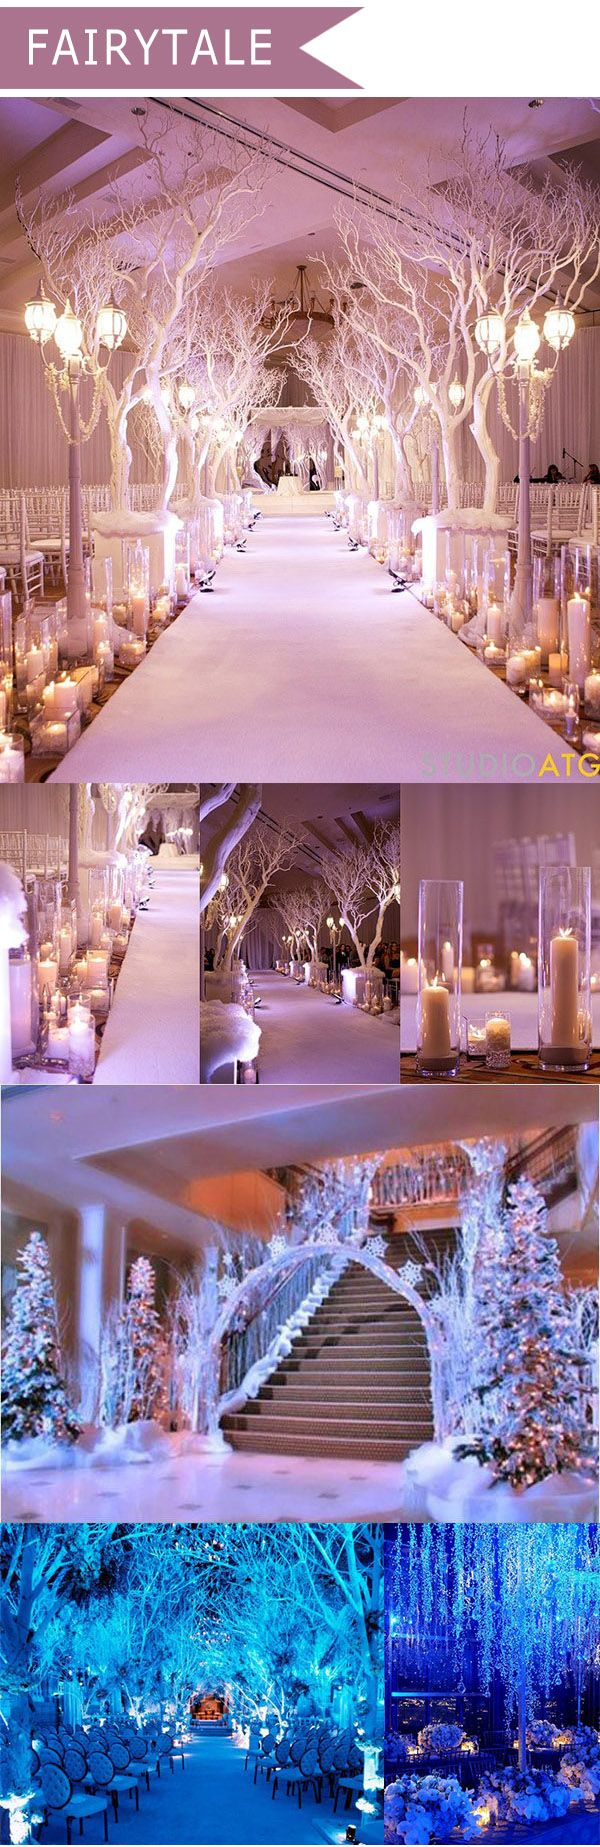 Best 25 winter wedding decorations ideas on pinterest winter fairytale themed wedding decoration ideas for 2016 trends junglespirit Gallery